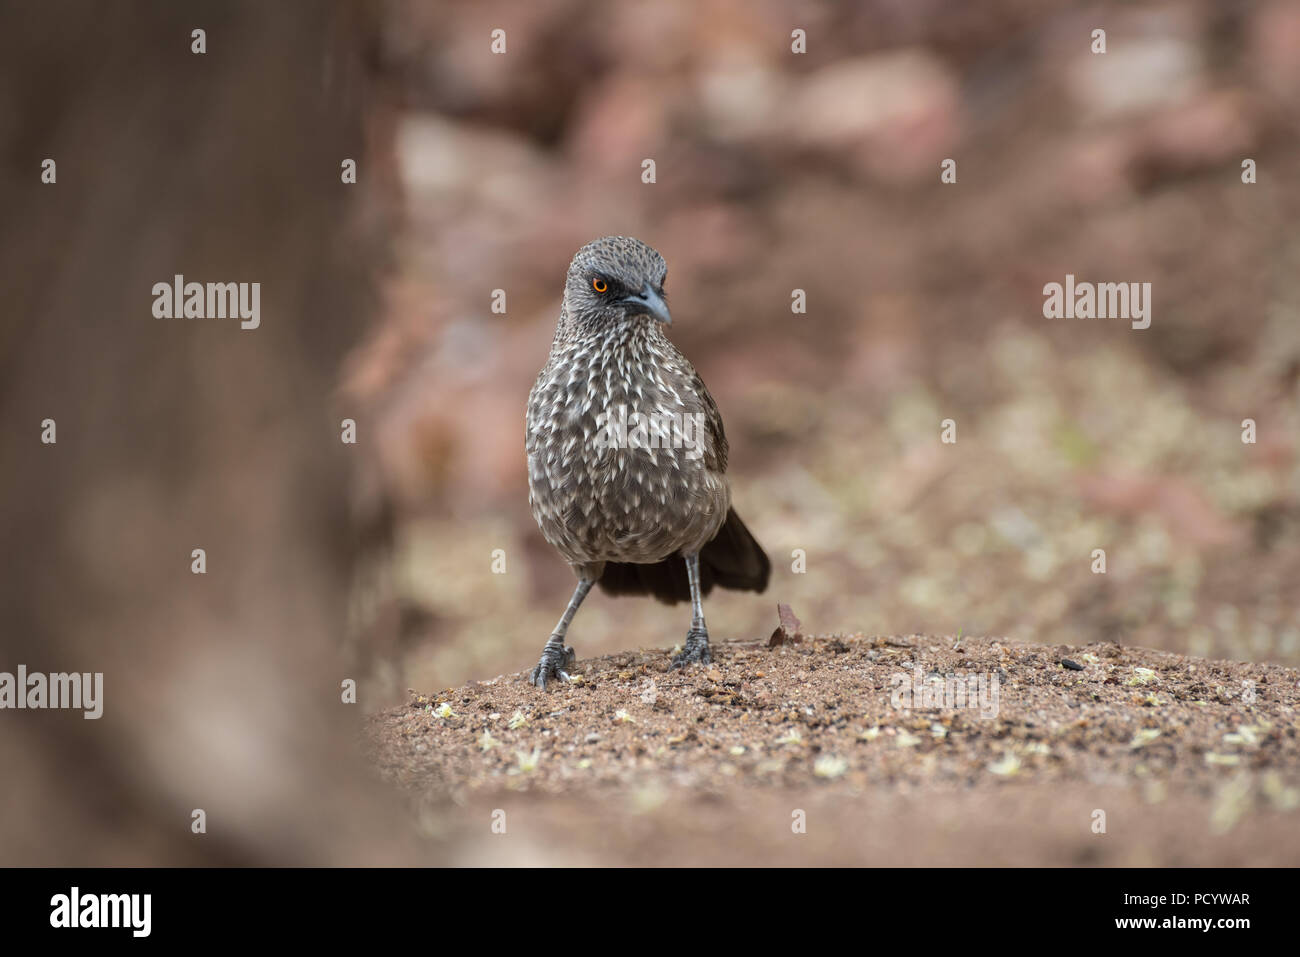 Close up portrait of arrow-marked babbler standing on ground with brown background, Kruger National Park, South Africa - Stock Image